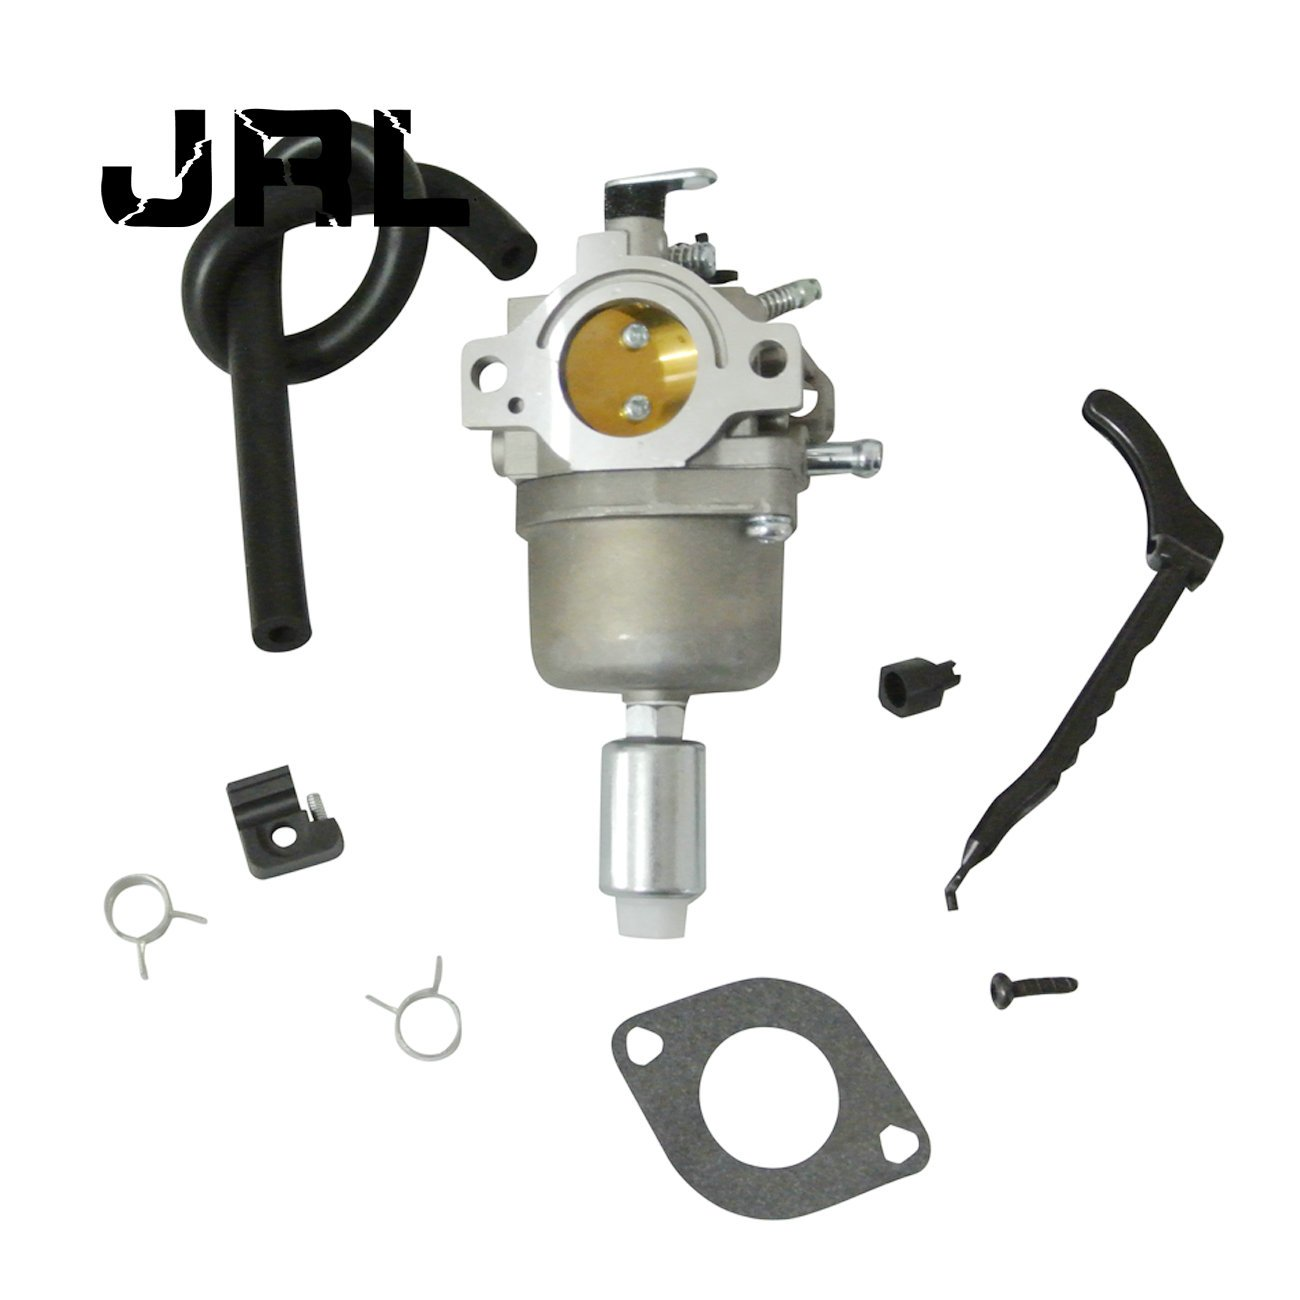 JRL Carburetor Carb for Briggs & Stratton 790418 699937 697141 697190 Engine